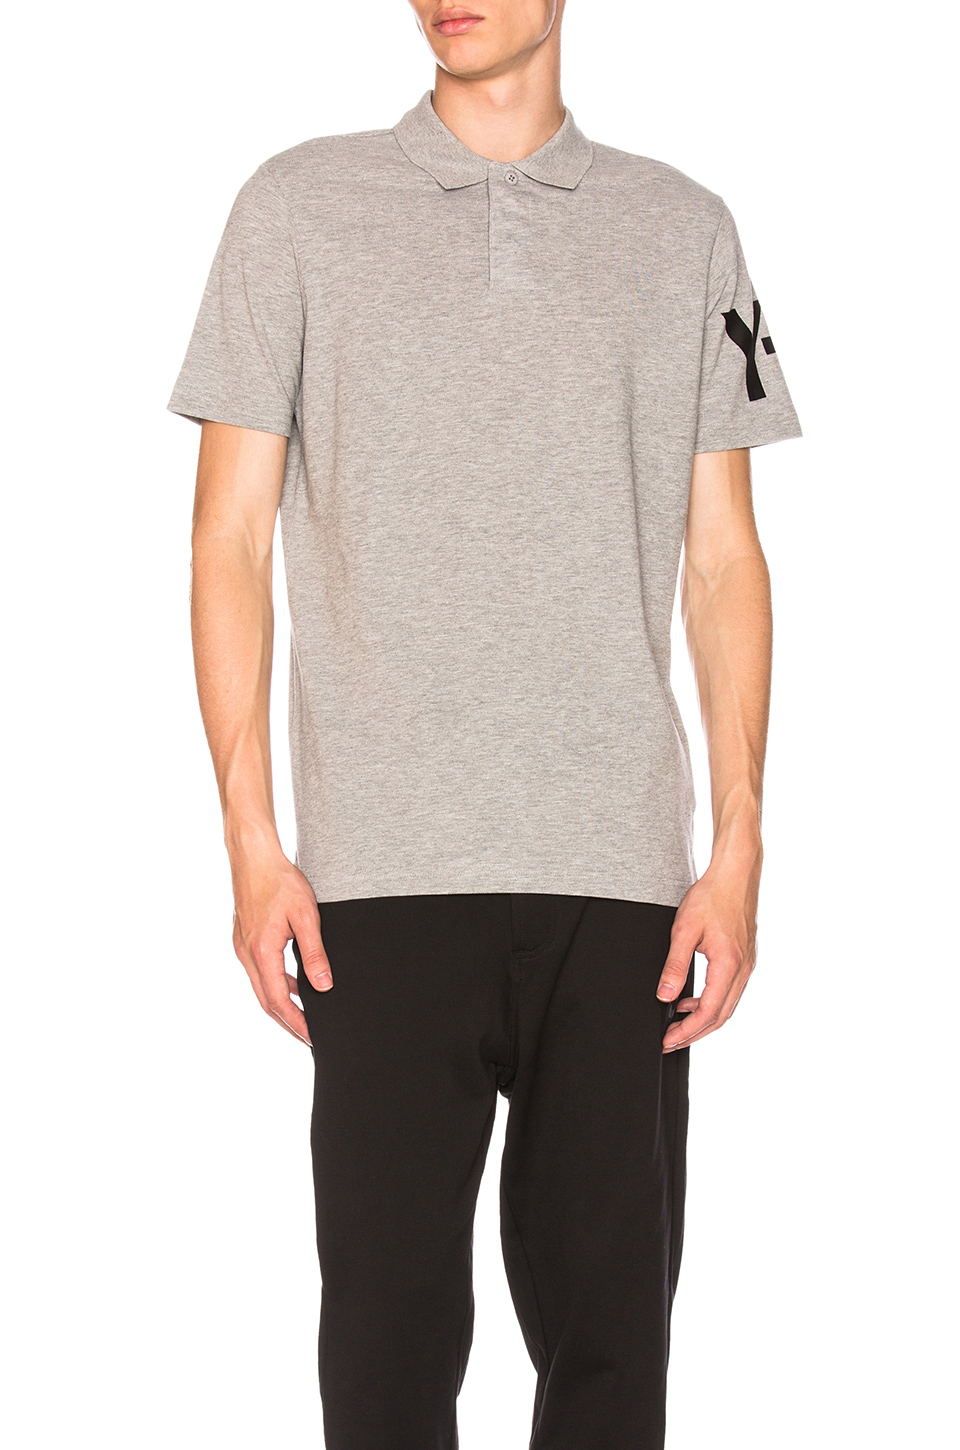 Y-3 Yohji Yamamoto CL Polo in Medium Grey Heather